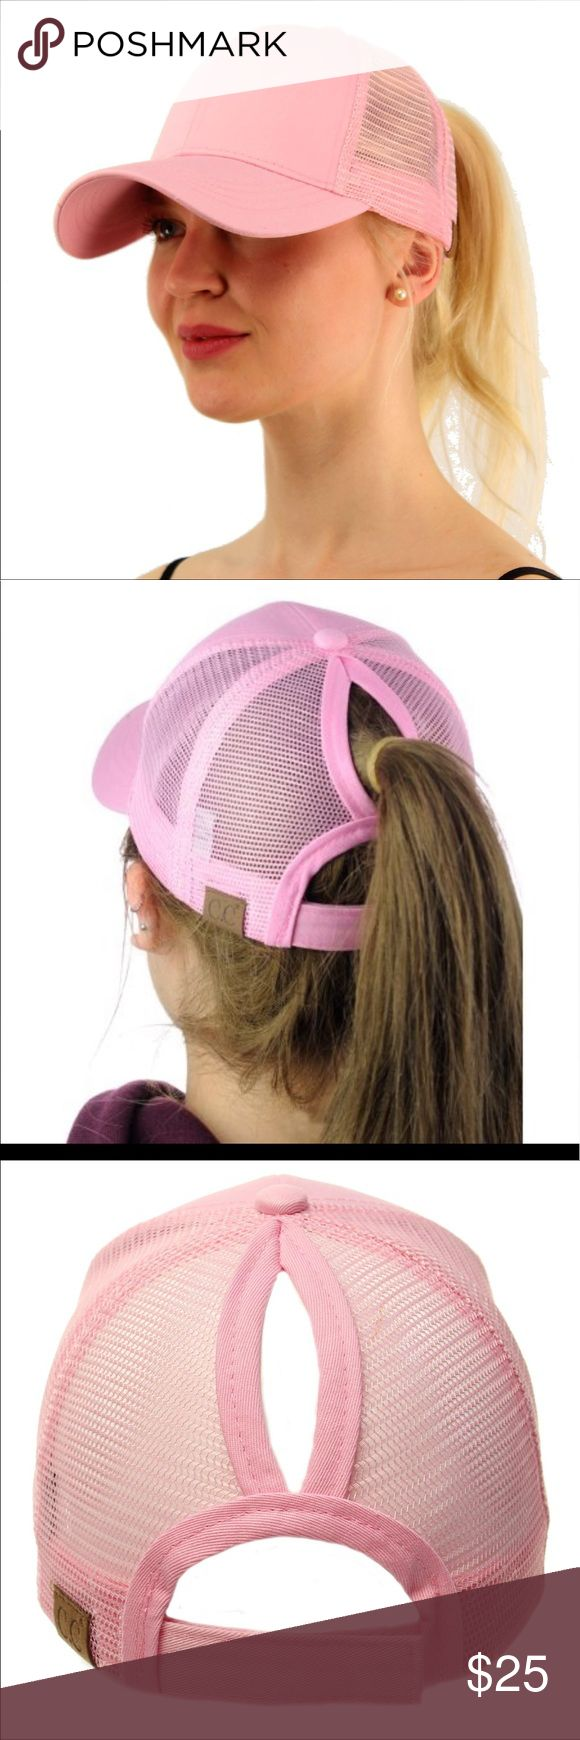 """🆕 Ponycap Messy High Bun Ponytail Mesh Cap One size fits most with adjustable hook and loop fastener. Ponytail slot: 3"""" by 5"""". Perfect for pulling your messy bun or high ponytail through. Simply pull hair through slot and adjust to desired style. Even suitable for man buns! This listing is for pink. Boutique Accessories Hats"""